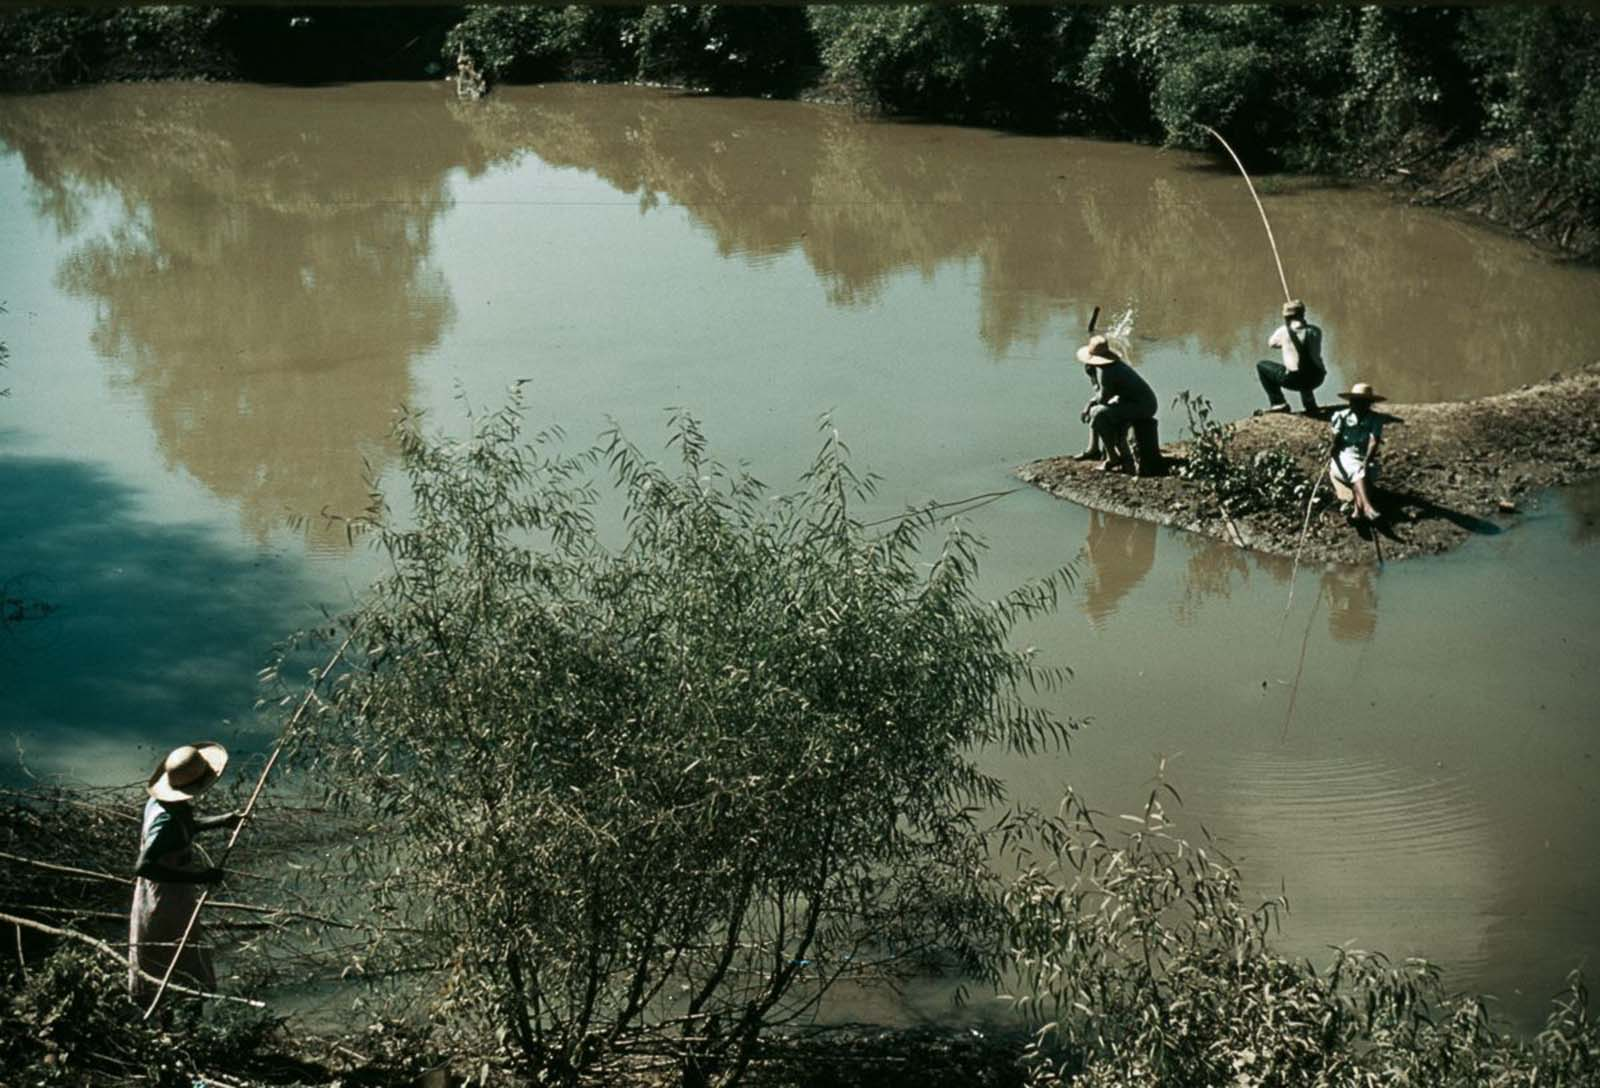 People fish in a creek near Belzoni, Mississippi. 1939.